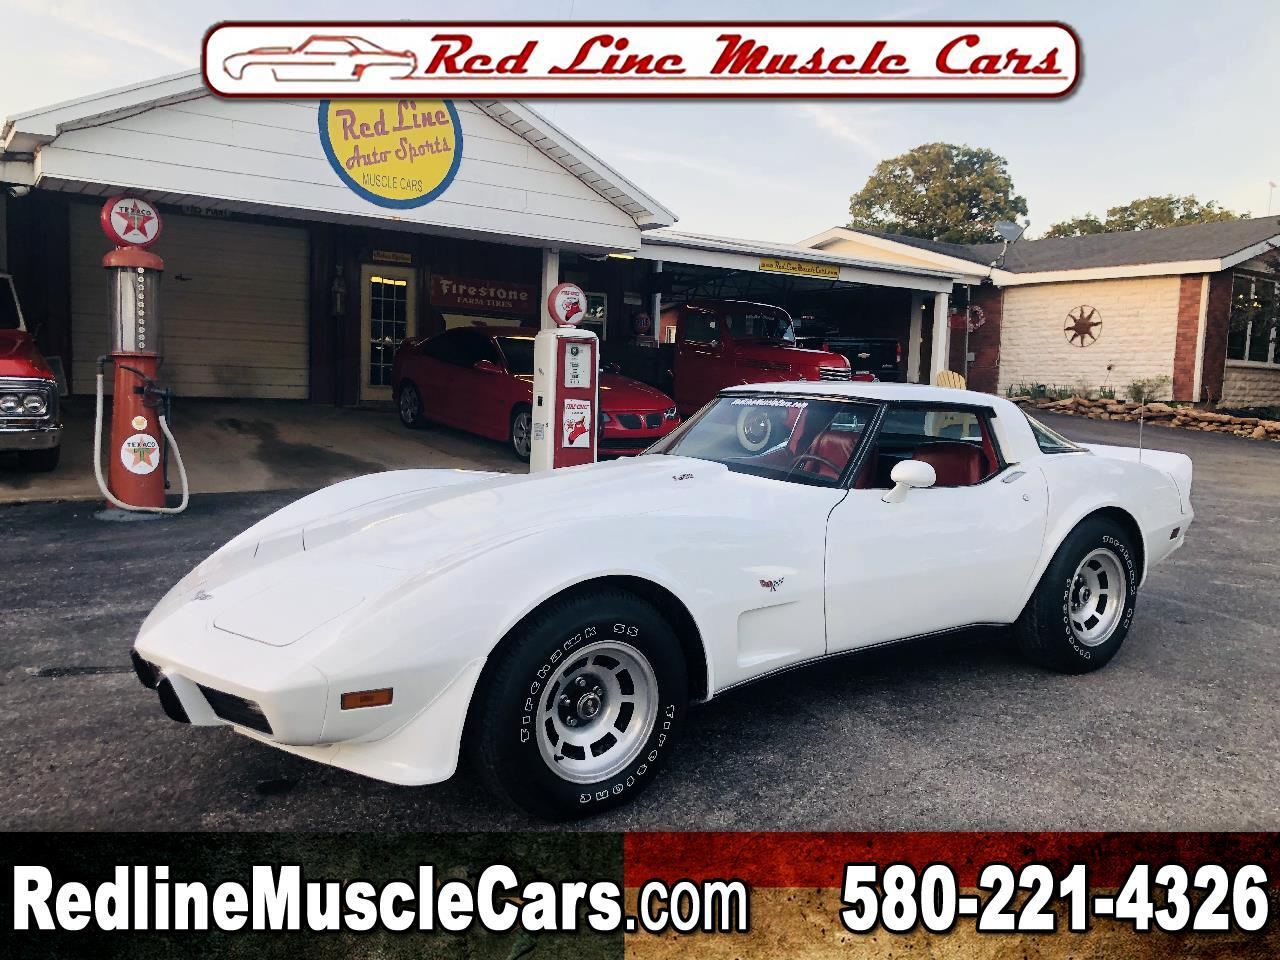 1979 Chevrolet Corvette Stingray coupe